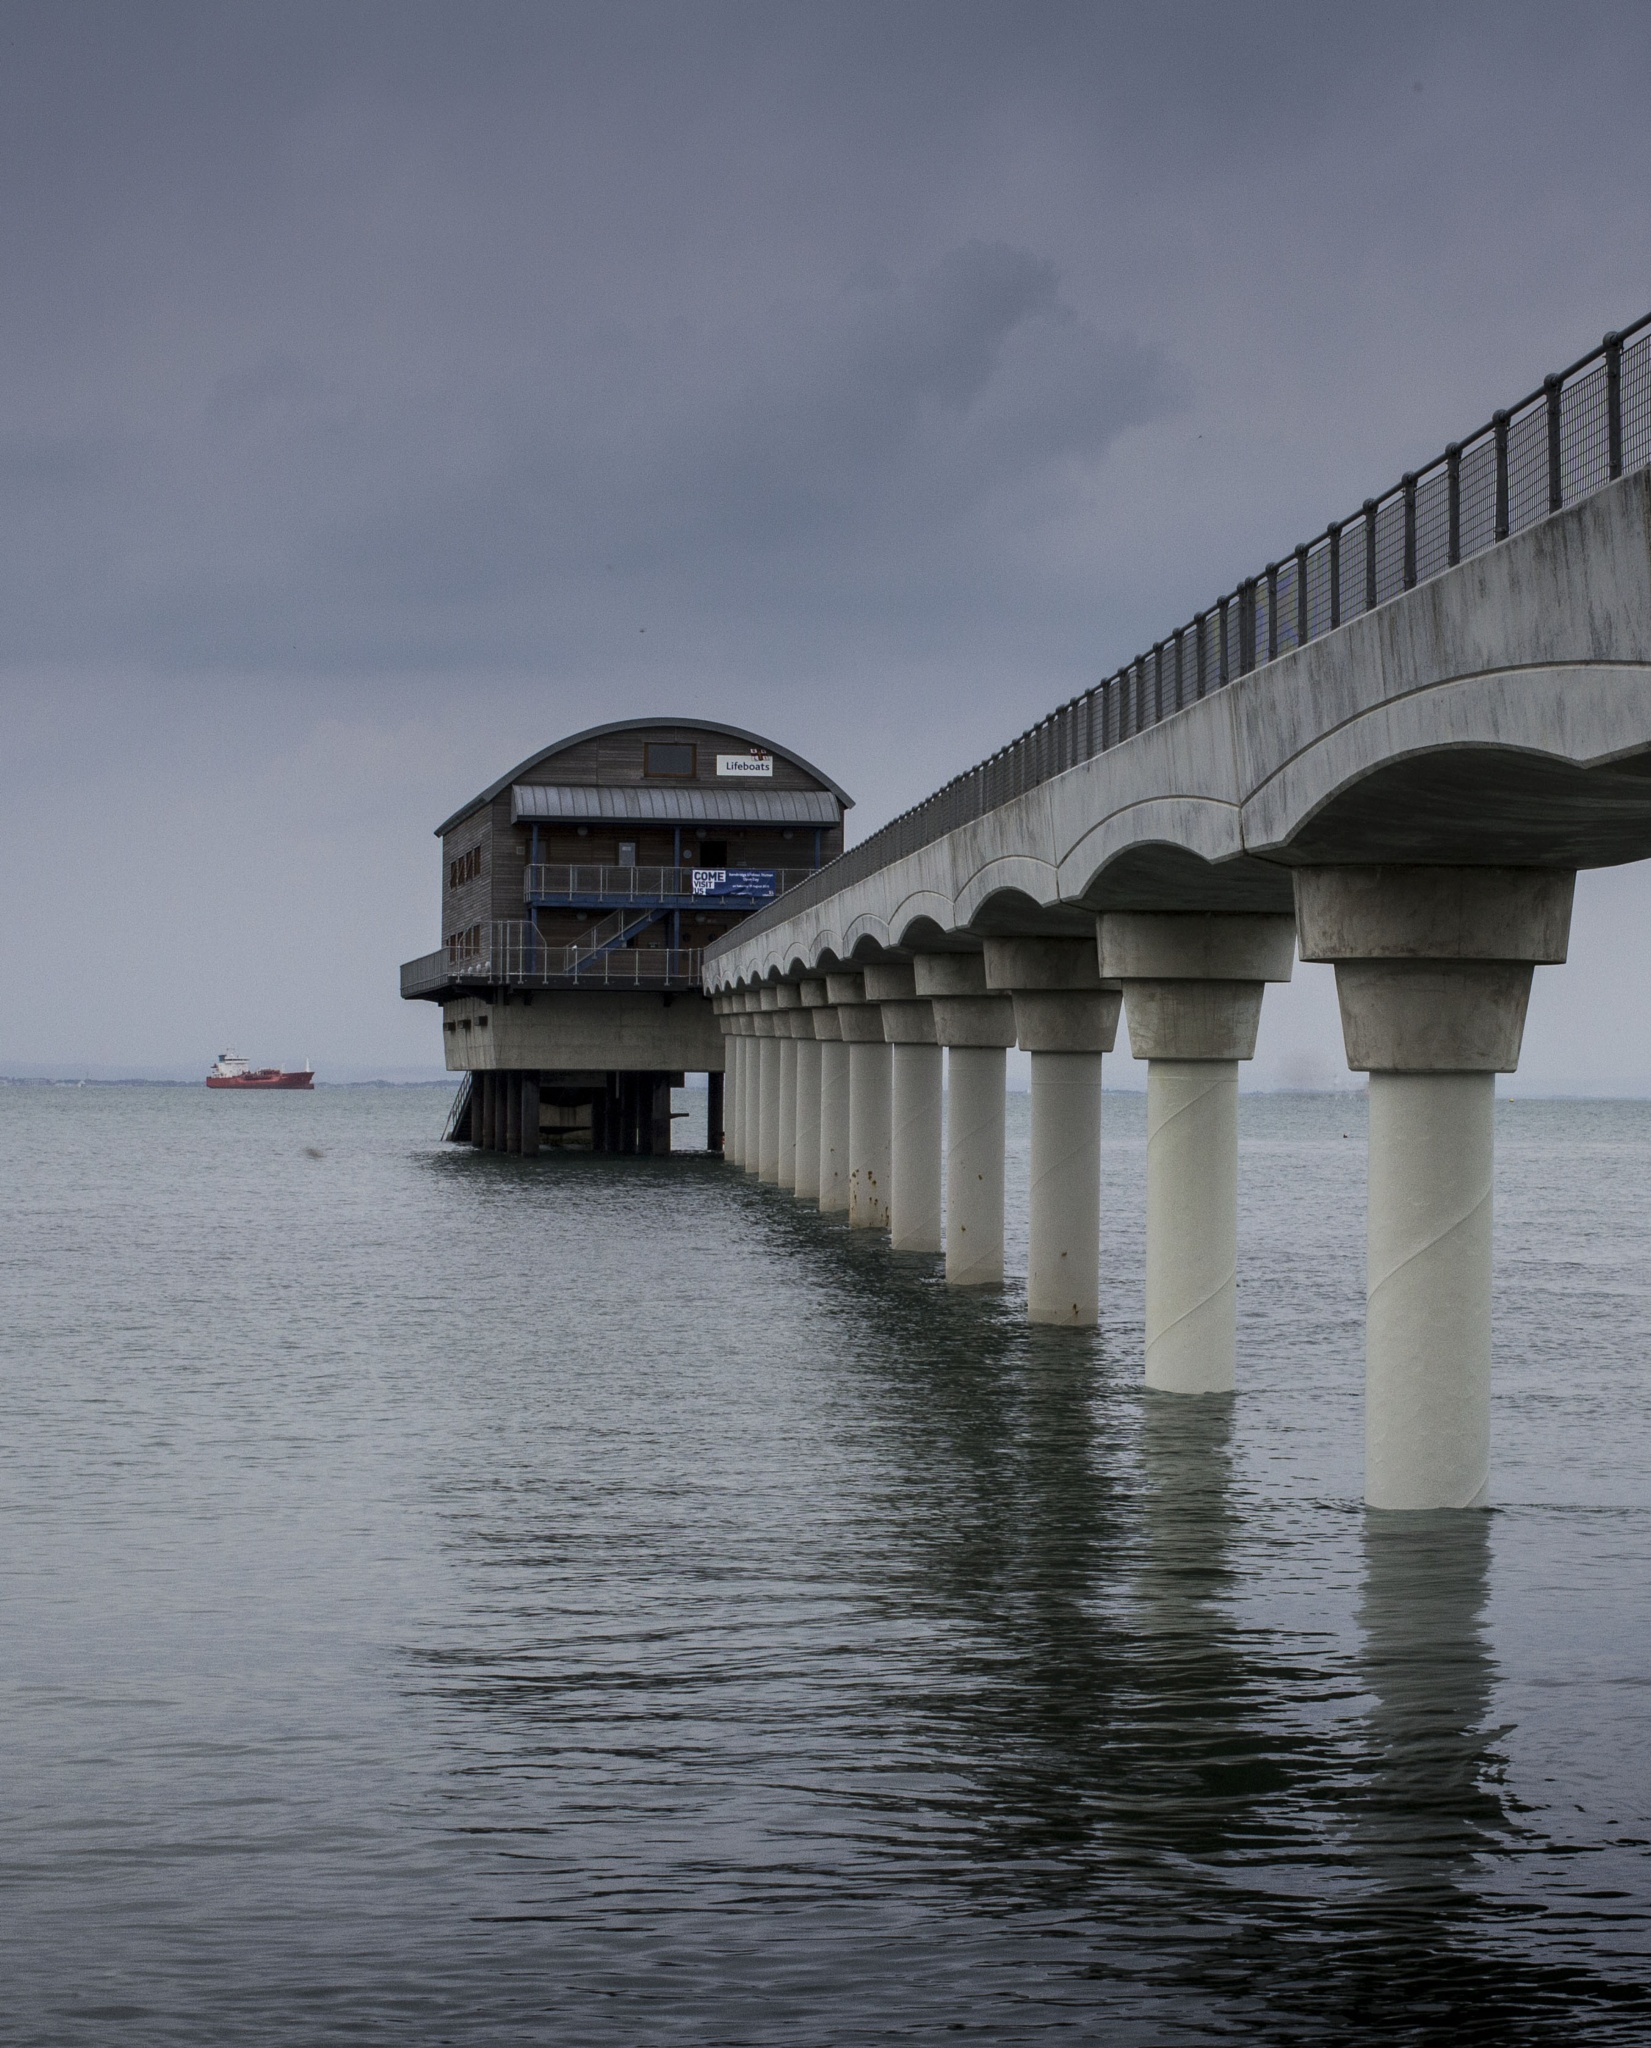 Bembridge Lifeboat Station by mtinteriors